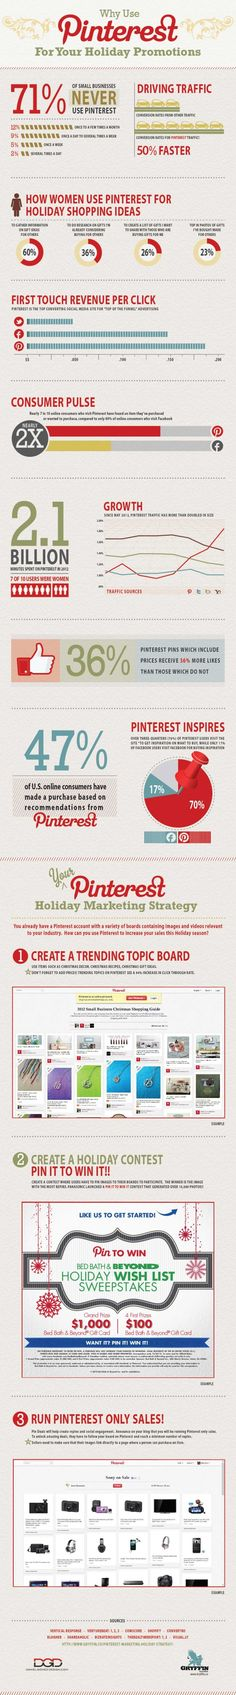 Pinterest Marketing Tips: Holiday Infographic